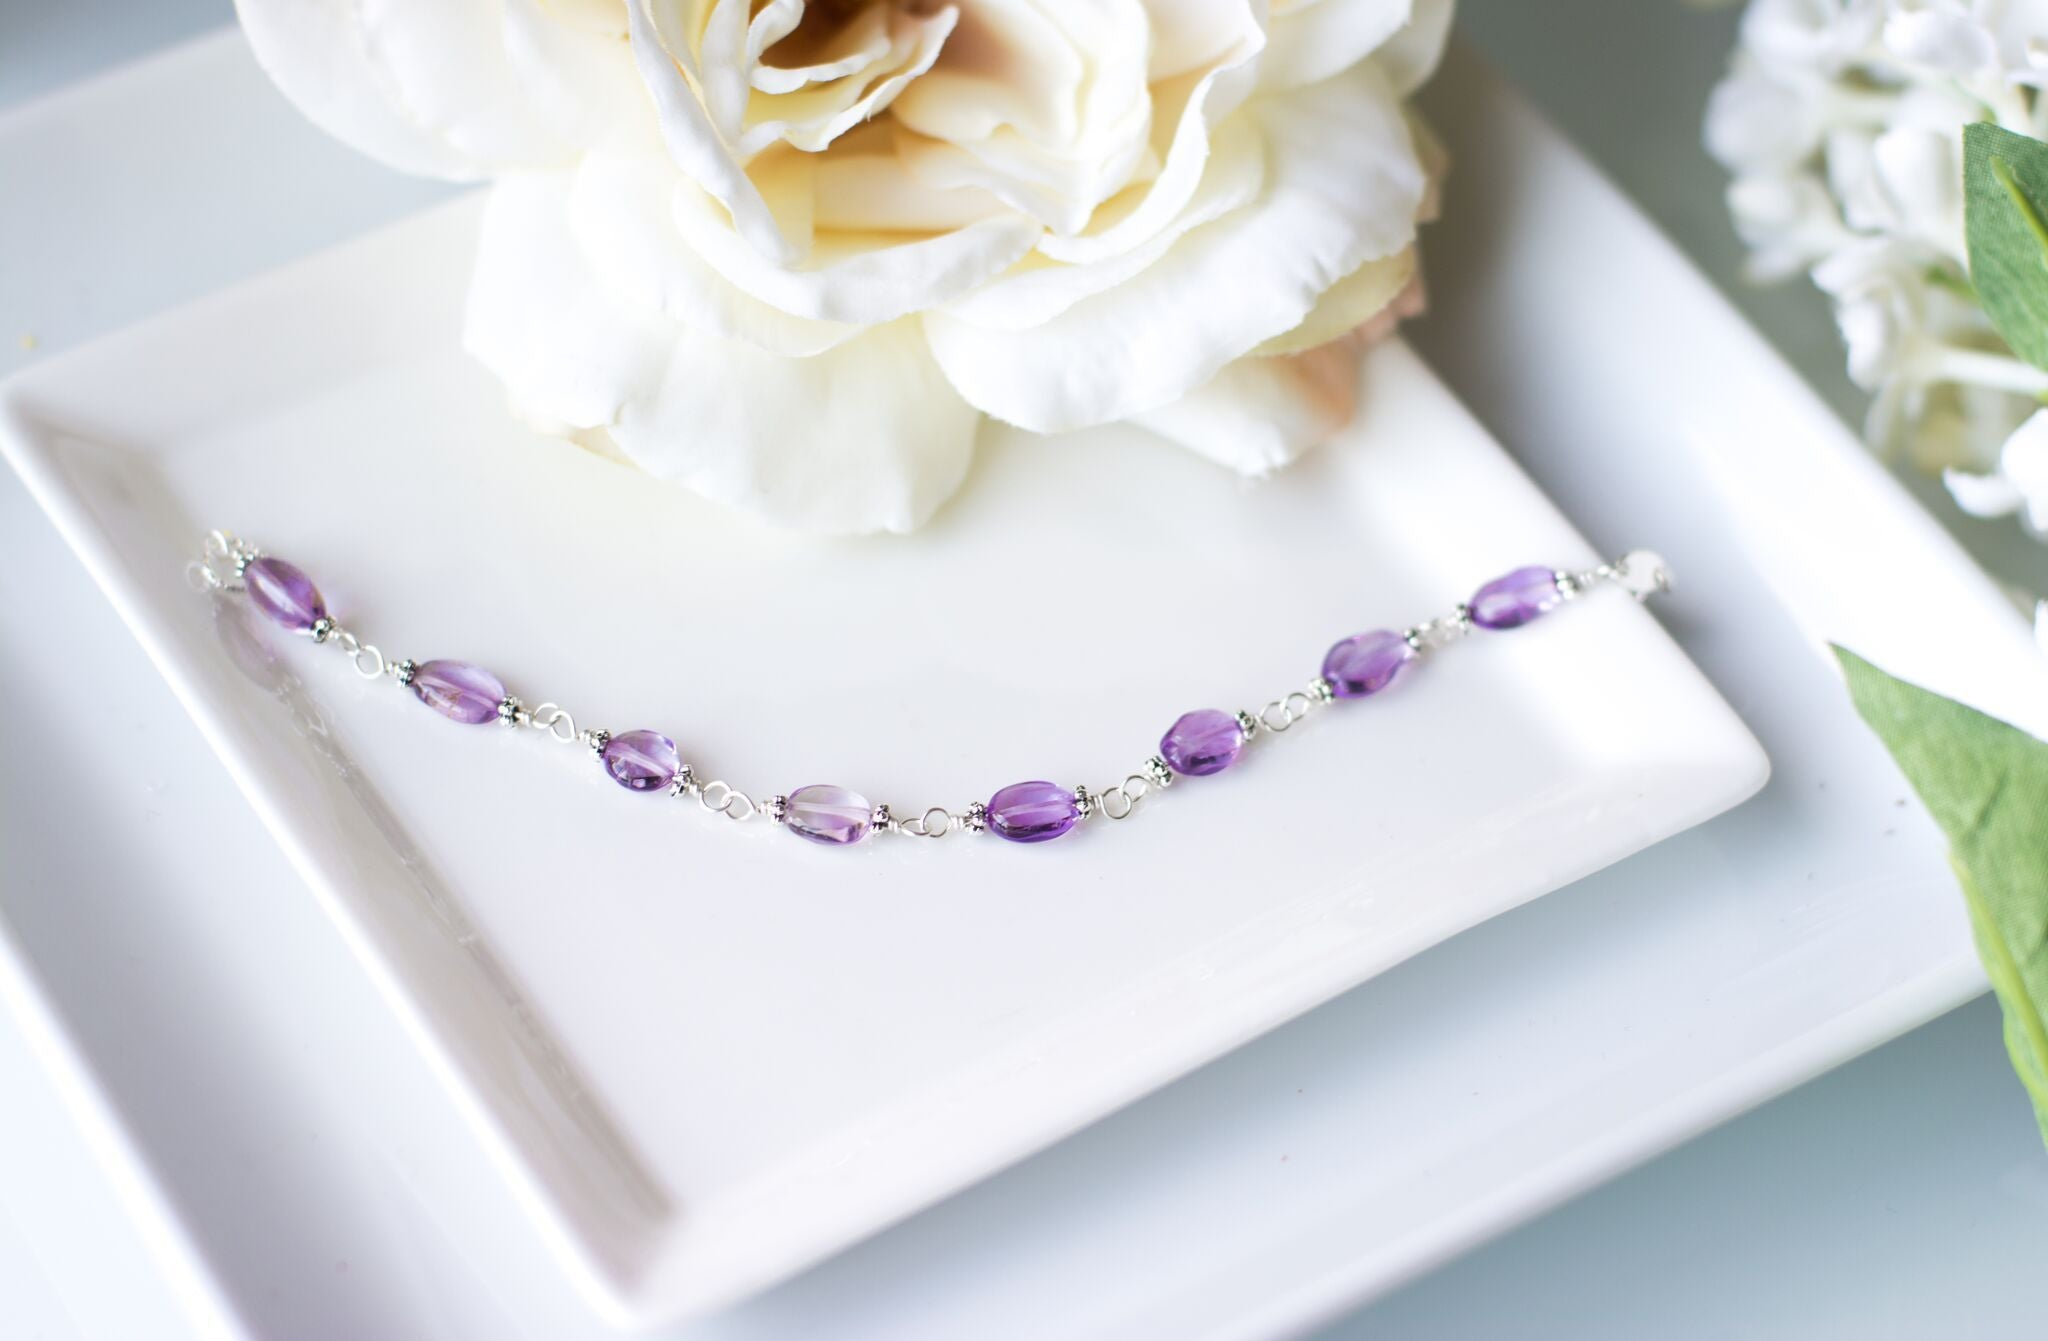 Mum Birthday Gifts - Sterling Silver Amethyst Bracelet - Swanky Collection